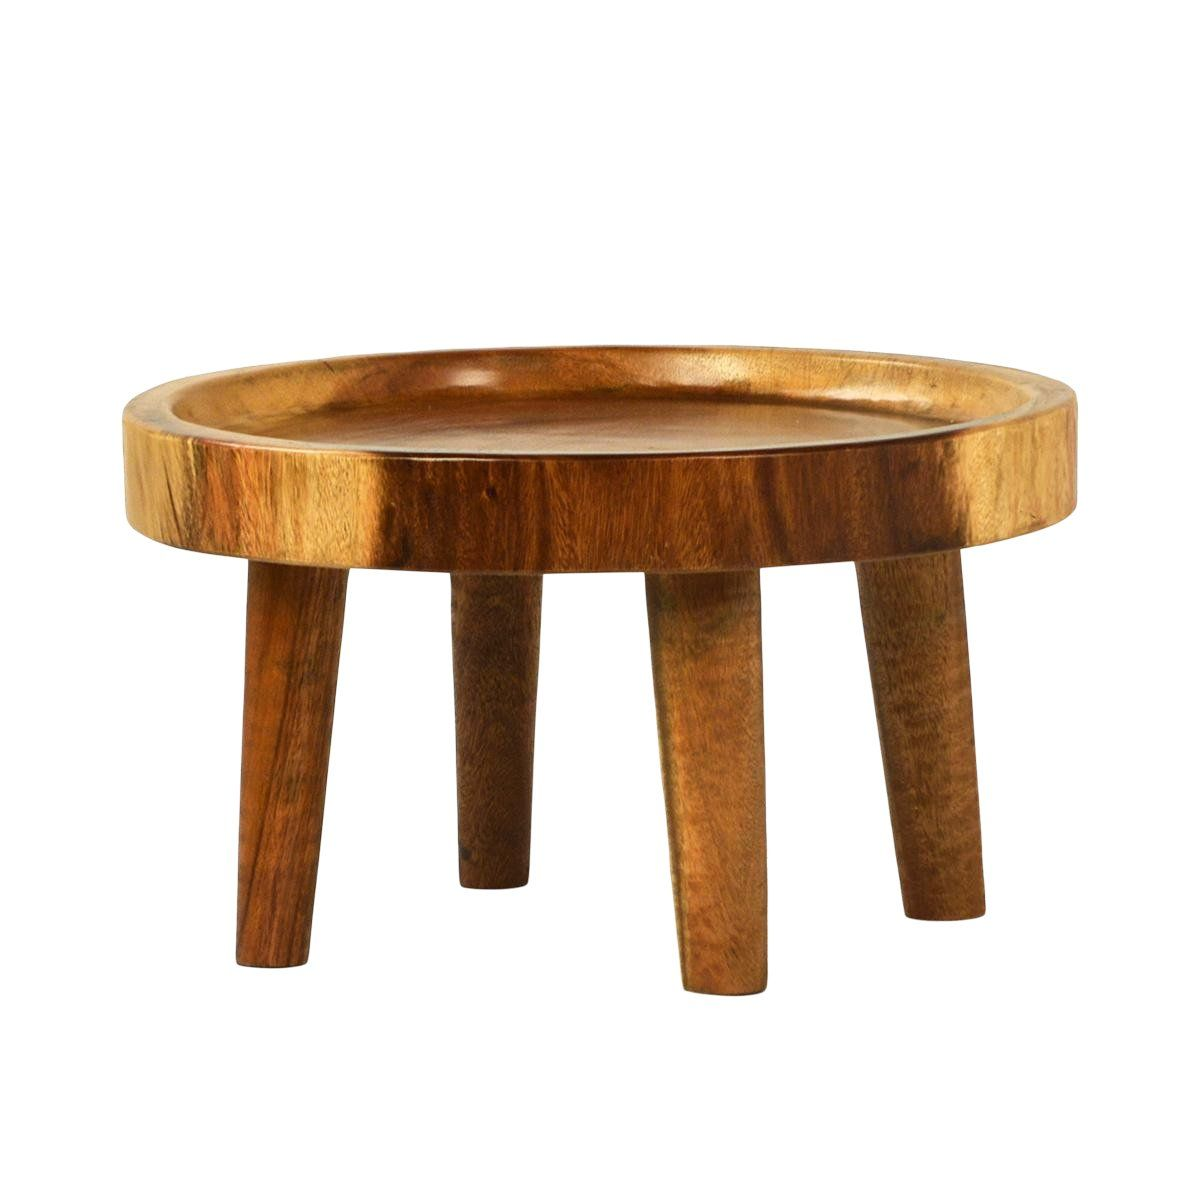 Assam Wood Round Coffee Table For Sale Round Wood Coffee Table Coffee Tables For Sale Coffee Table [ 1200 x 1200 Pixel ]